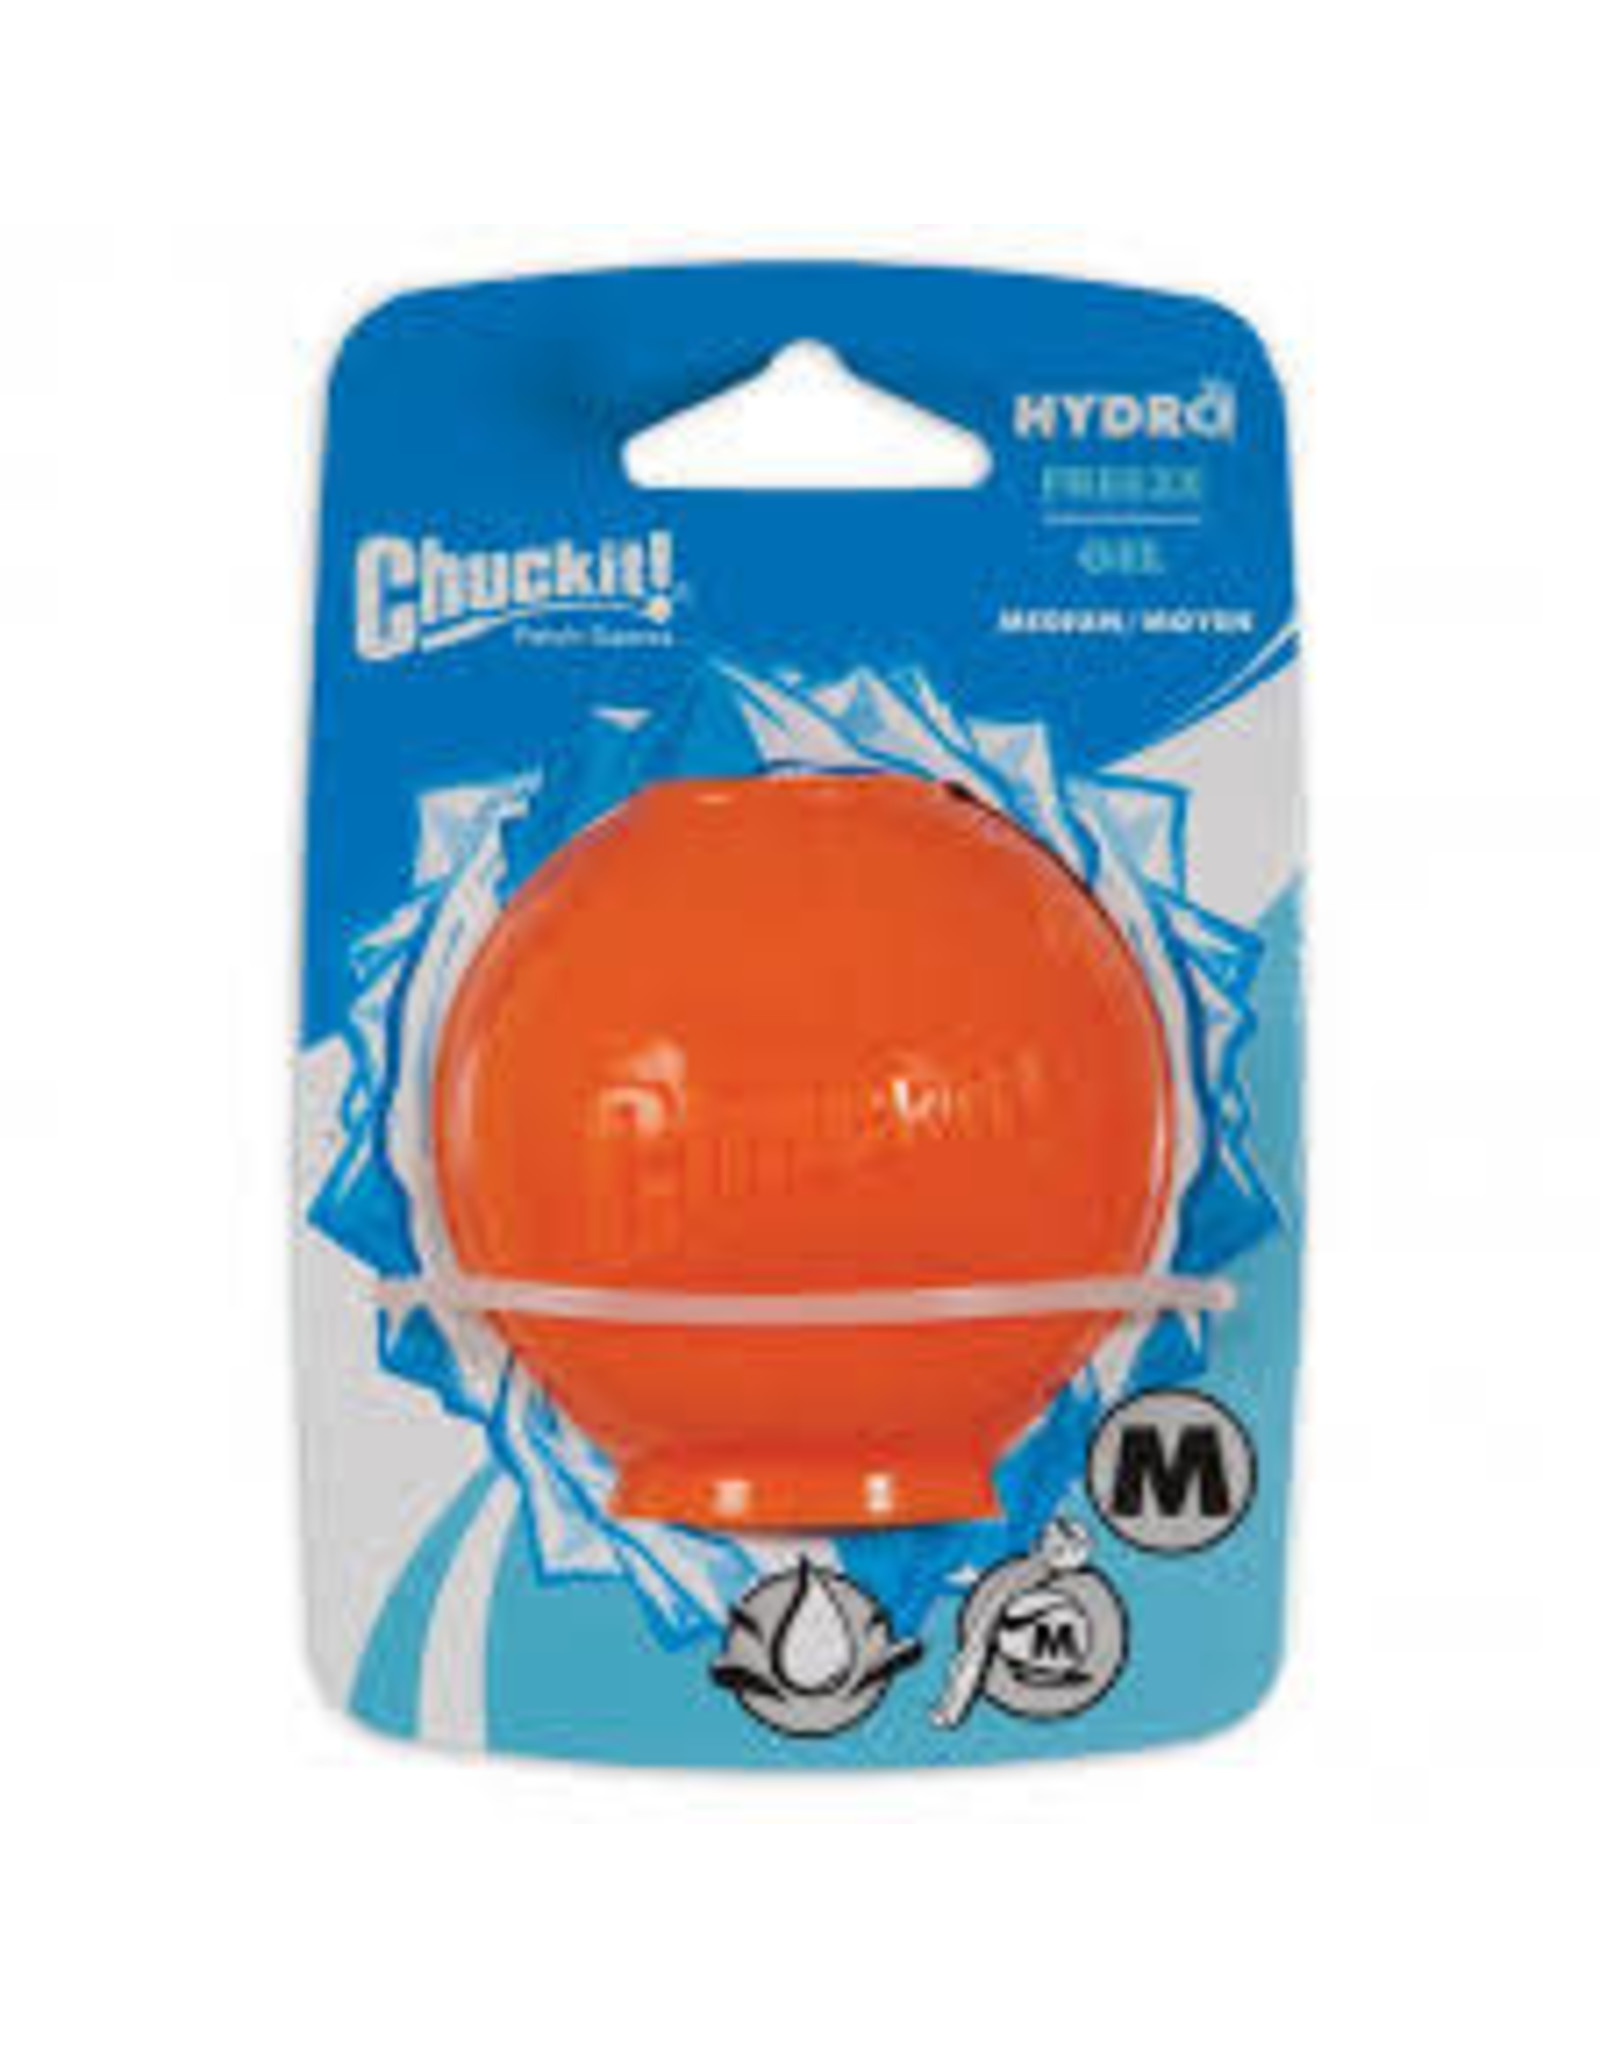 Chuckit! Hydro Freeze Ball Medium dog